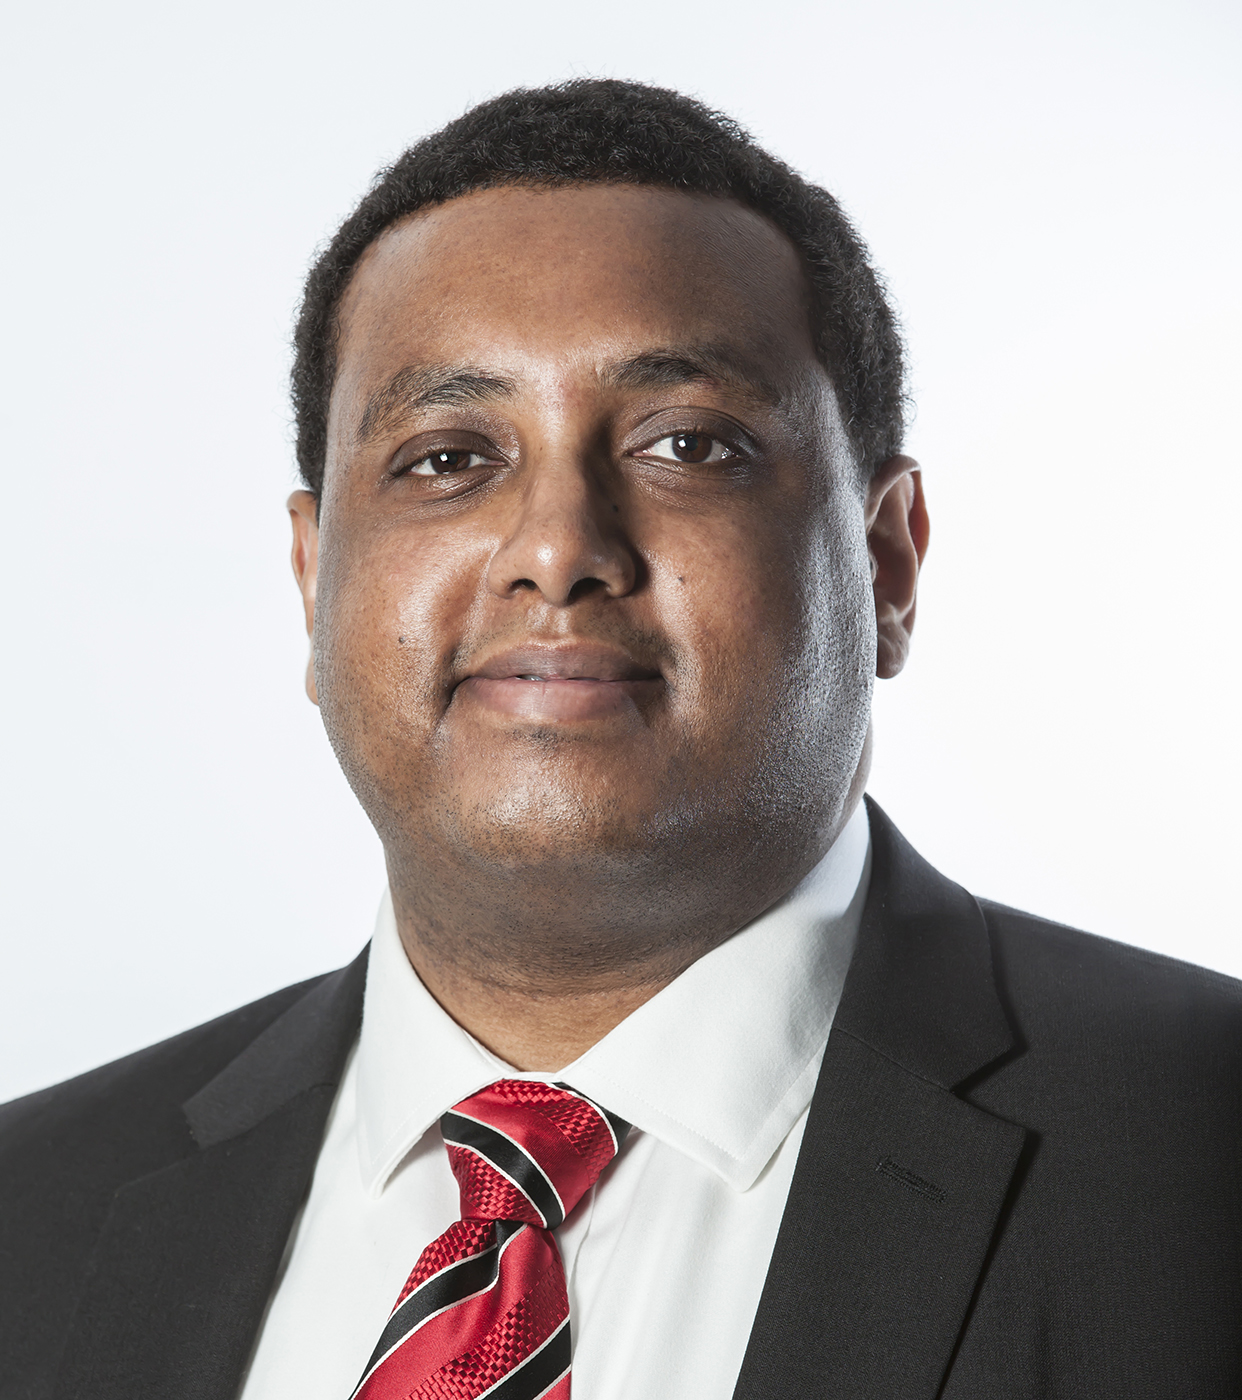 Mihyar Mohamed